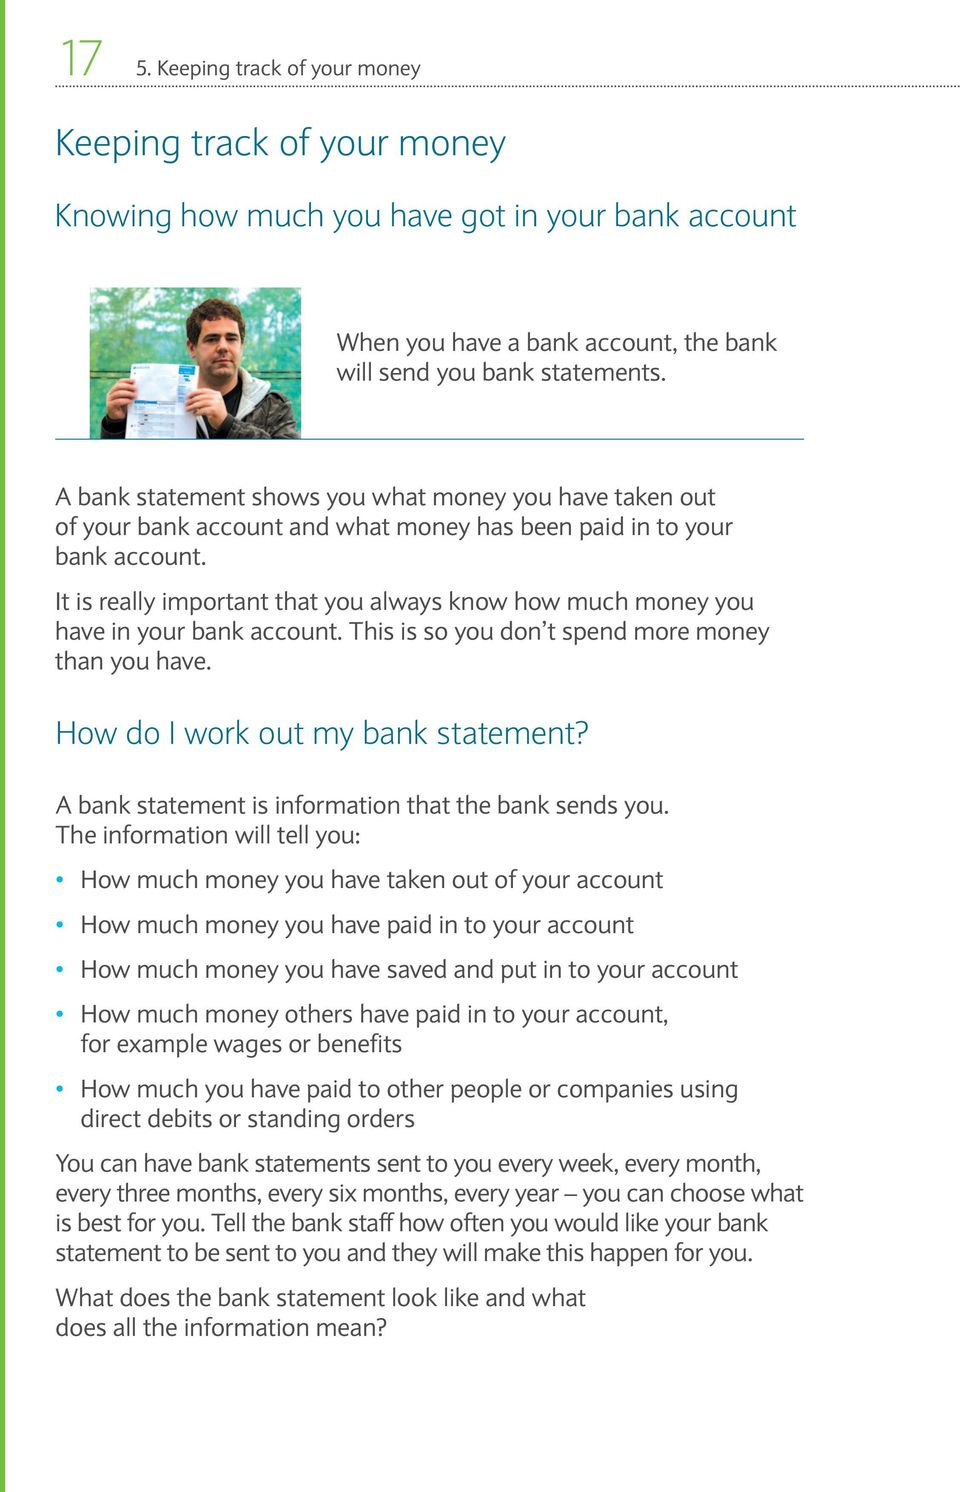 It is really important that you always know how much money you have in your bank account. This is so you don t spend more money than you have. How do I work out my bank statement?